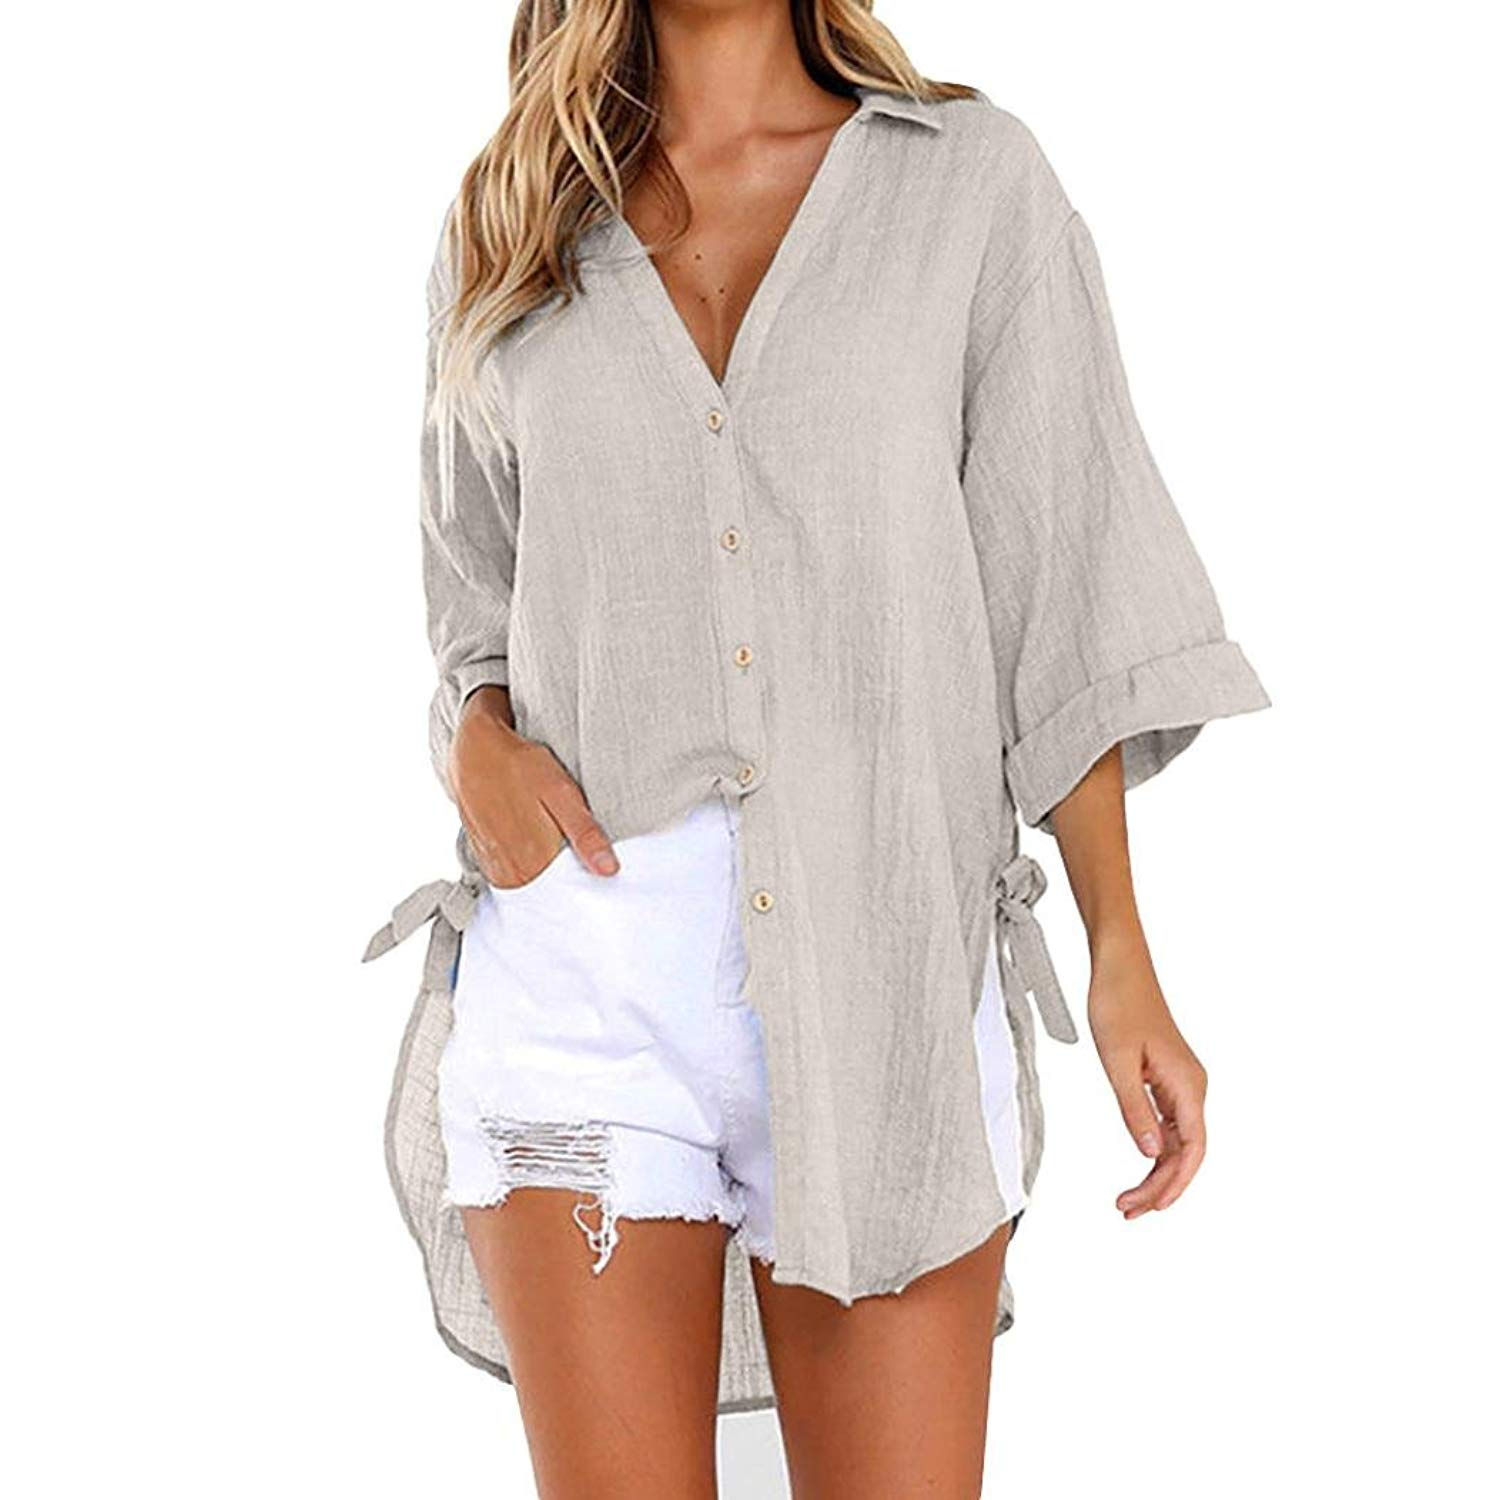 046ebefec18 Get Quotations · DEATU Womens Sexy V-Neck Long Shirt Dress Ladies Loose  Button Casual Tops T-